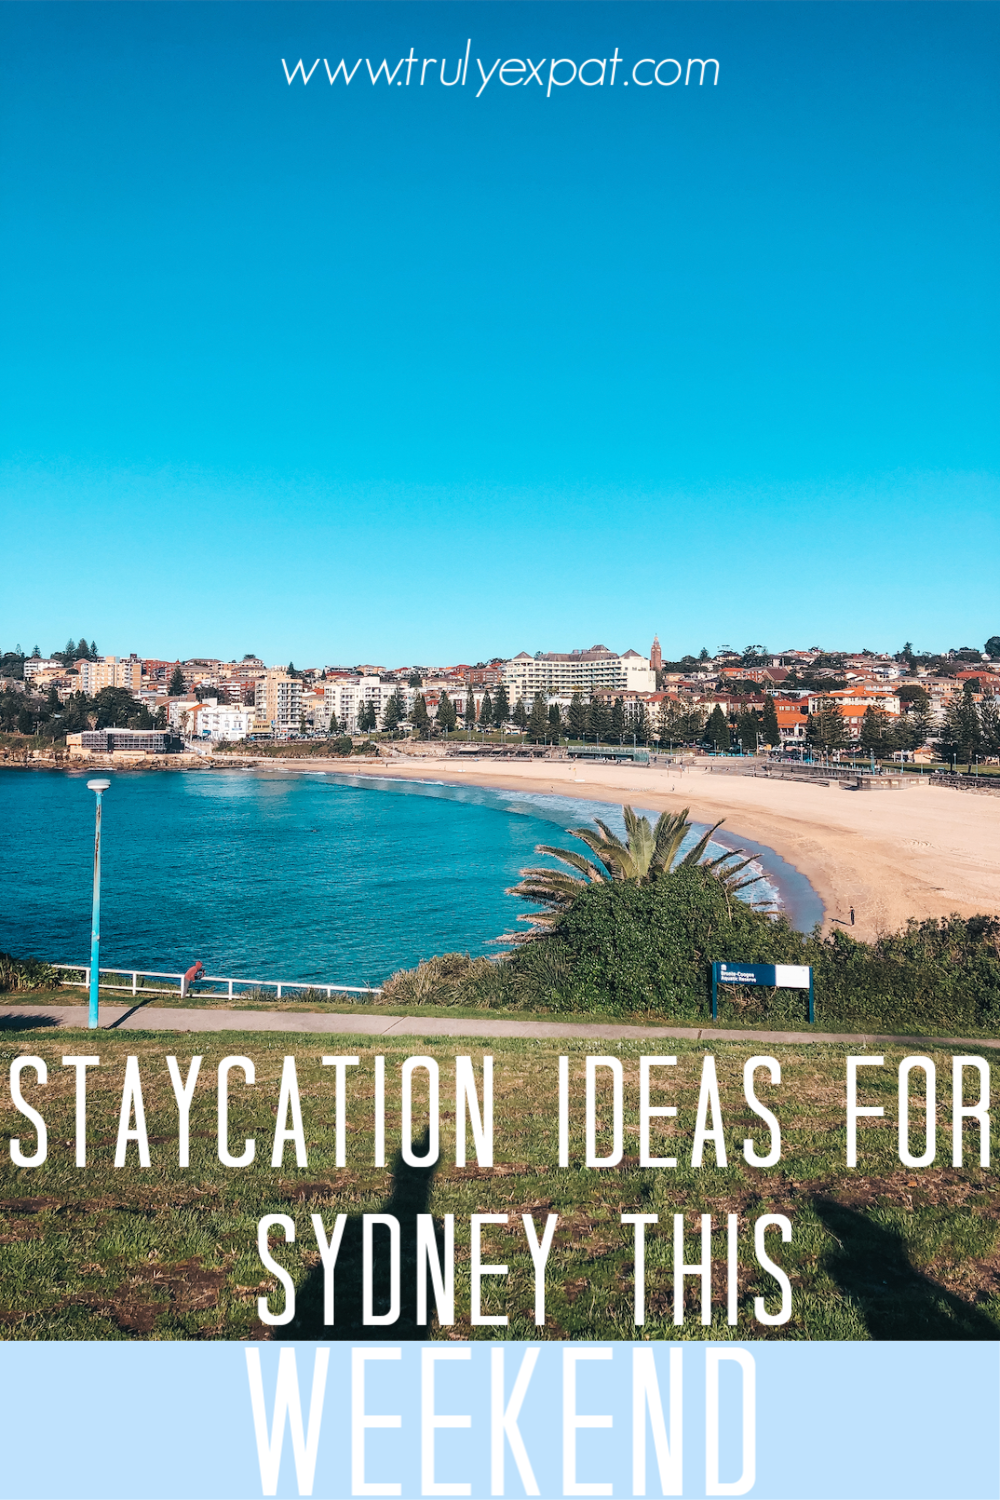 staycation destinations for. sydney this weekend